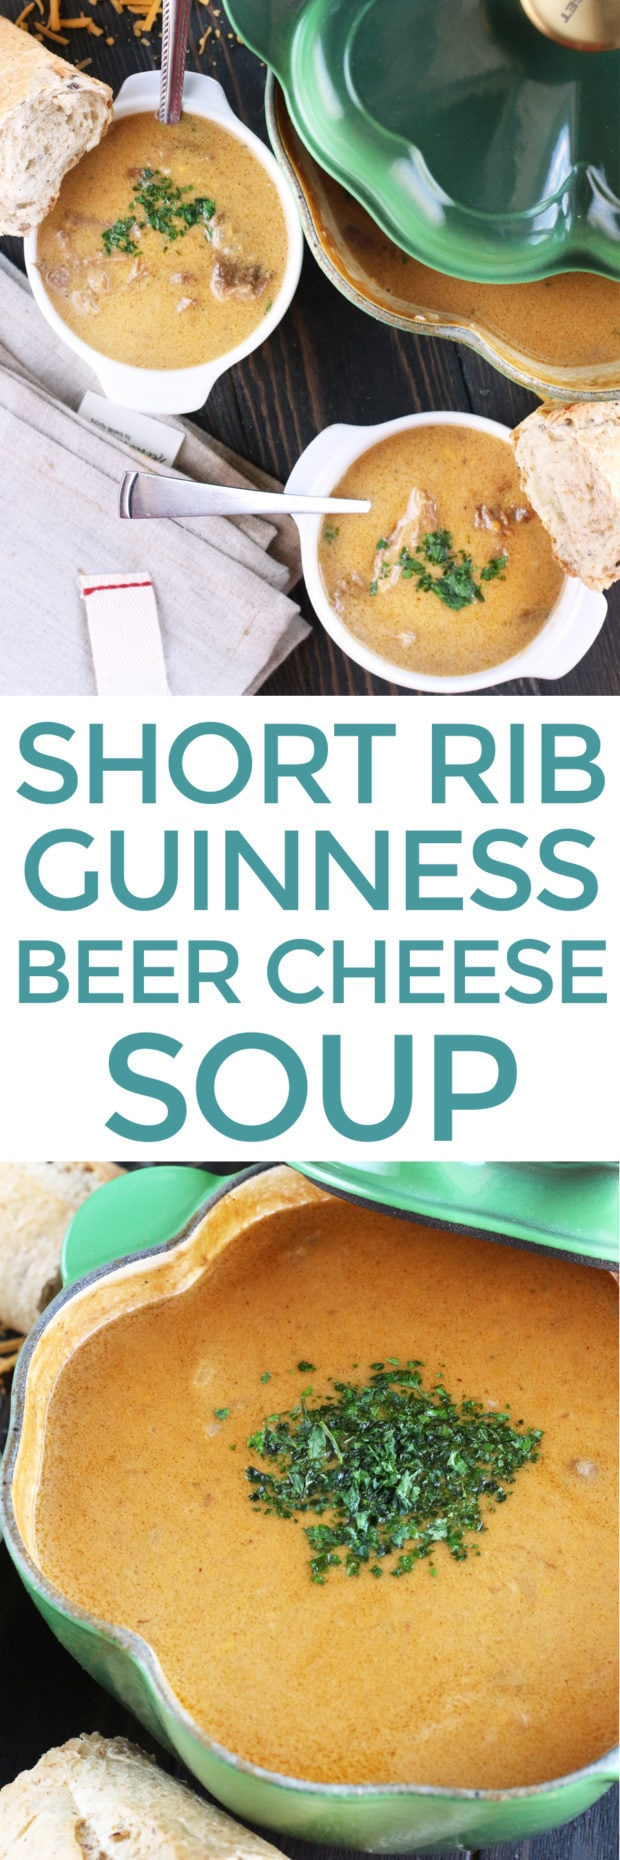 Short Rib Guinness Beer Cheese Soup